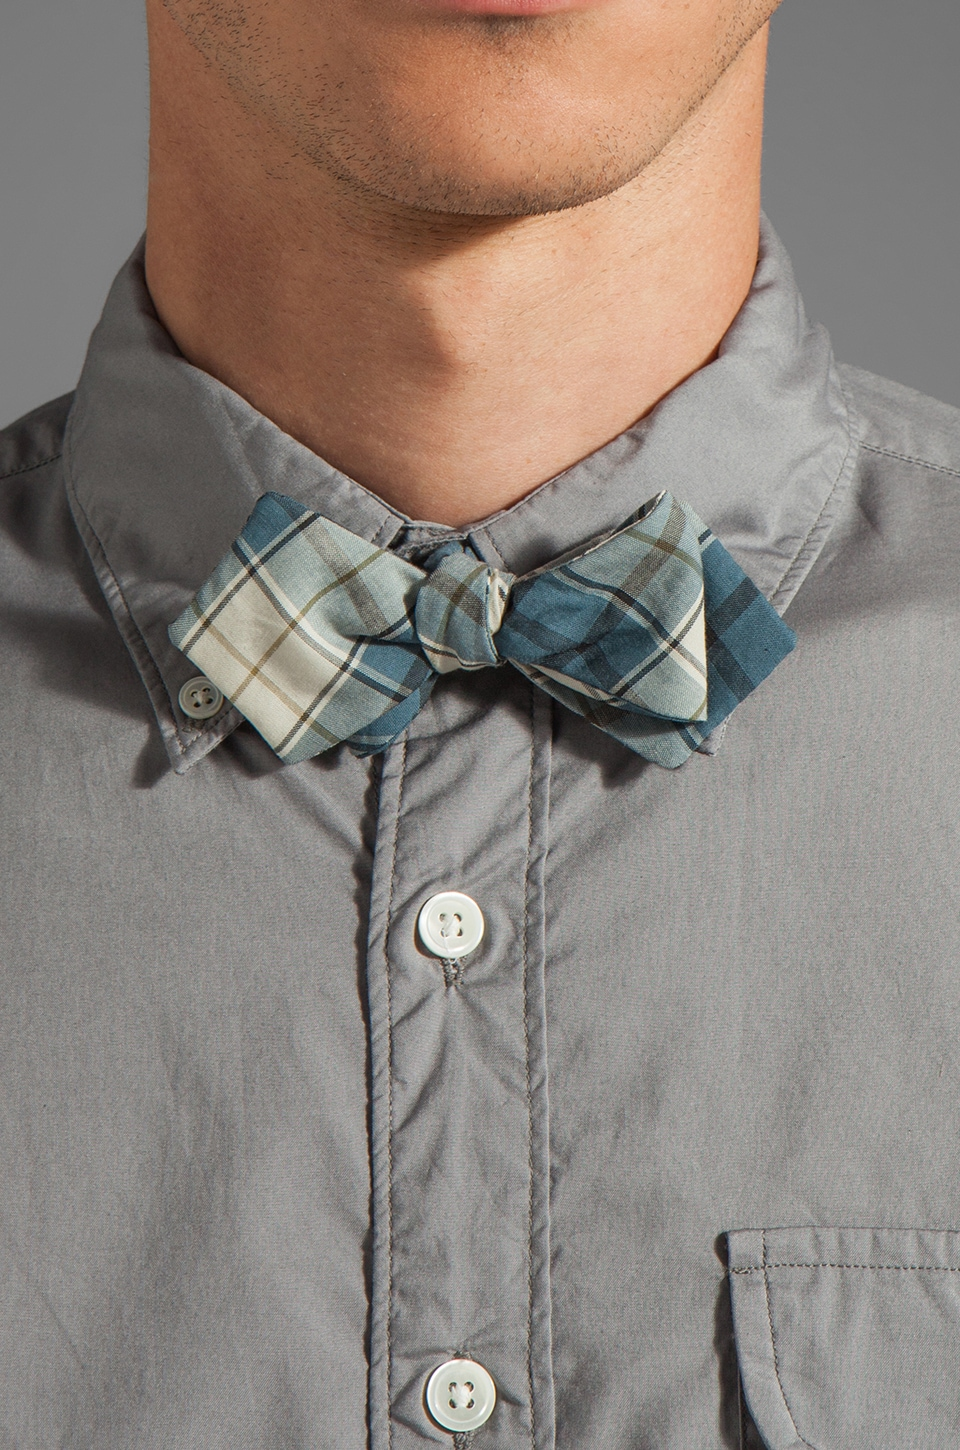 TODD SNYDER Bow Tie Plaid #20 in Blue